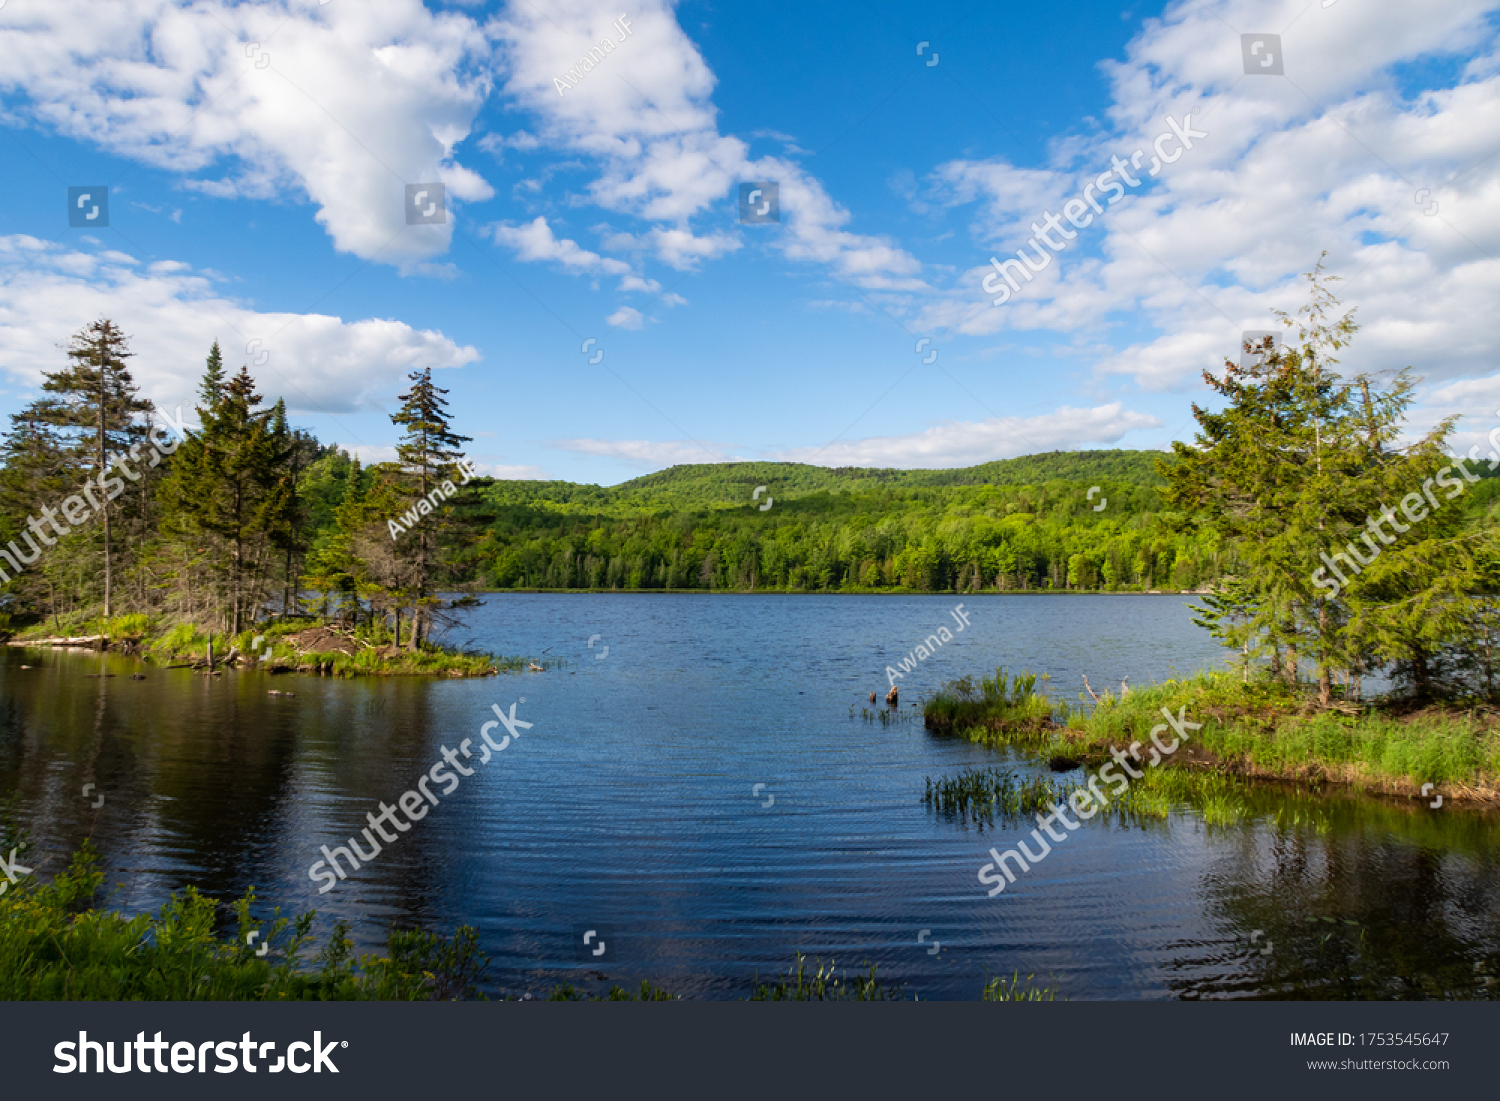 stock-photo-amazing-view-of-the-tang-aux